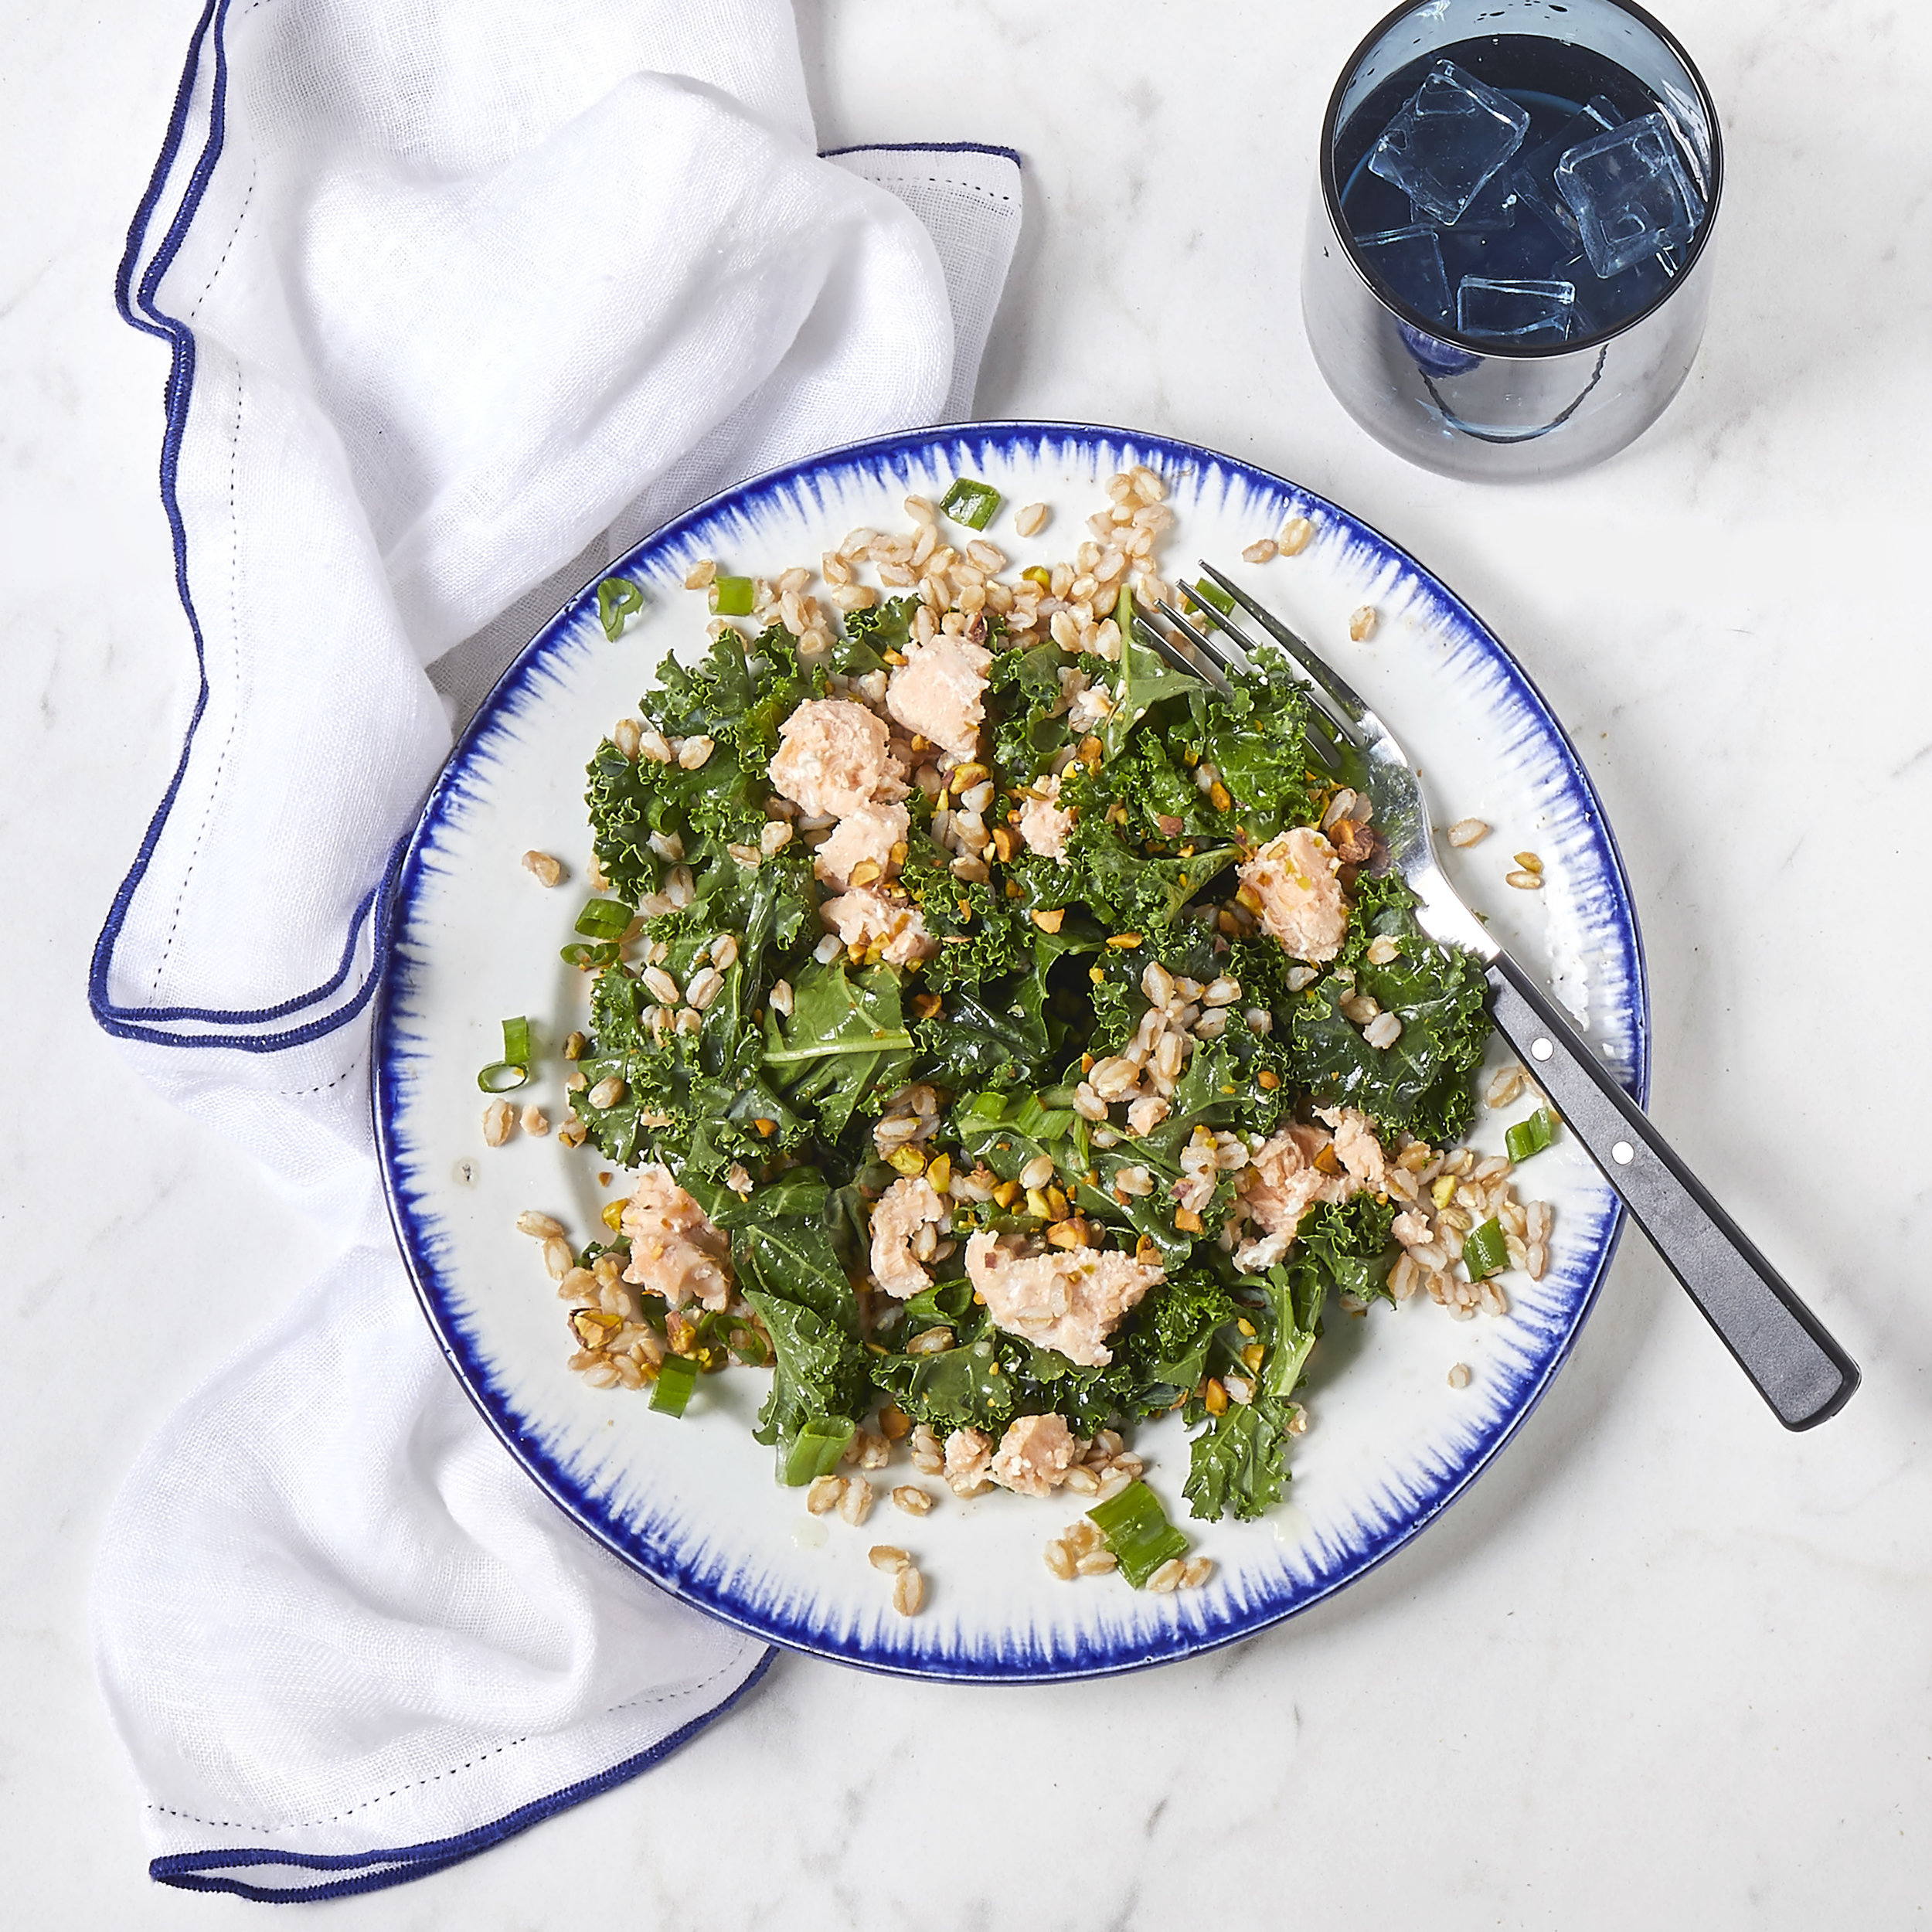 Kale Farro Salad with Salmon - Ingredients:- Juice of Half a Lemon- 2 Tbsp Extra Virgin Olive Oil- Course Salt & Freshly Ground Pepper- 2 Tins of Cole's Patagonia Salmon in Spring Water- 1 Bunch of Scallions, Thinly Sliced- 1 Bunch of Kale, Cut into 1-2 inch Pieces- 1/2 Cup of Flat Leaf Parsley- 1 Cup of Cooked Farro (cooked to package instructions)- 1/2 Cup PistachiosDirections:In a medium bowl, whisk together the lemon juice and olive oil. Season to taste with salt and pepper. Toss together the kale, scallions, parsley, and farro. Top with the salmon, dressing, and pistachios.